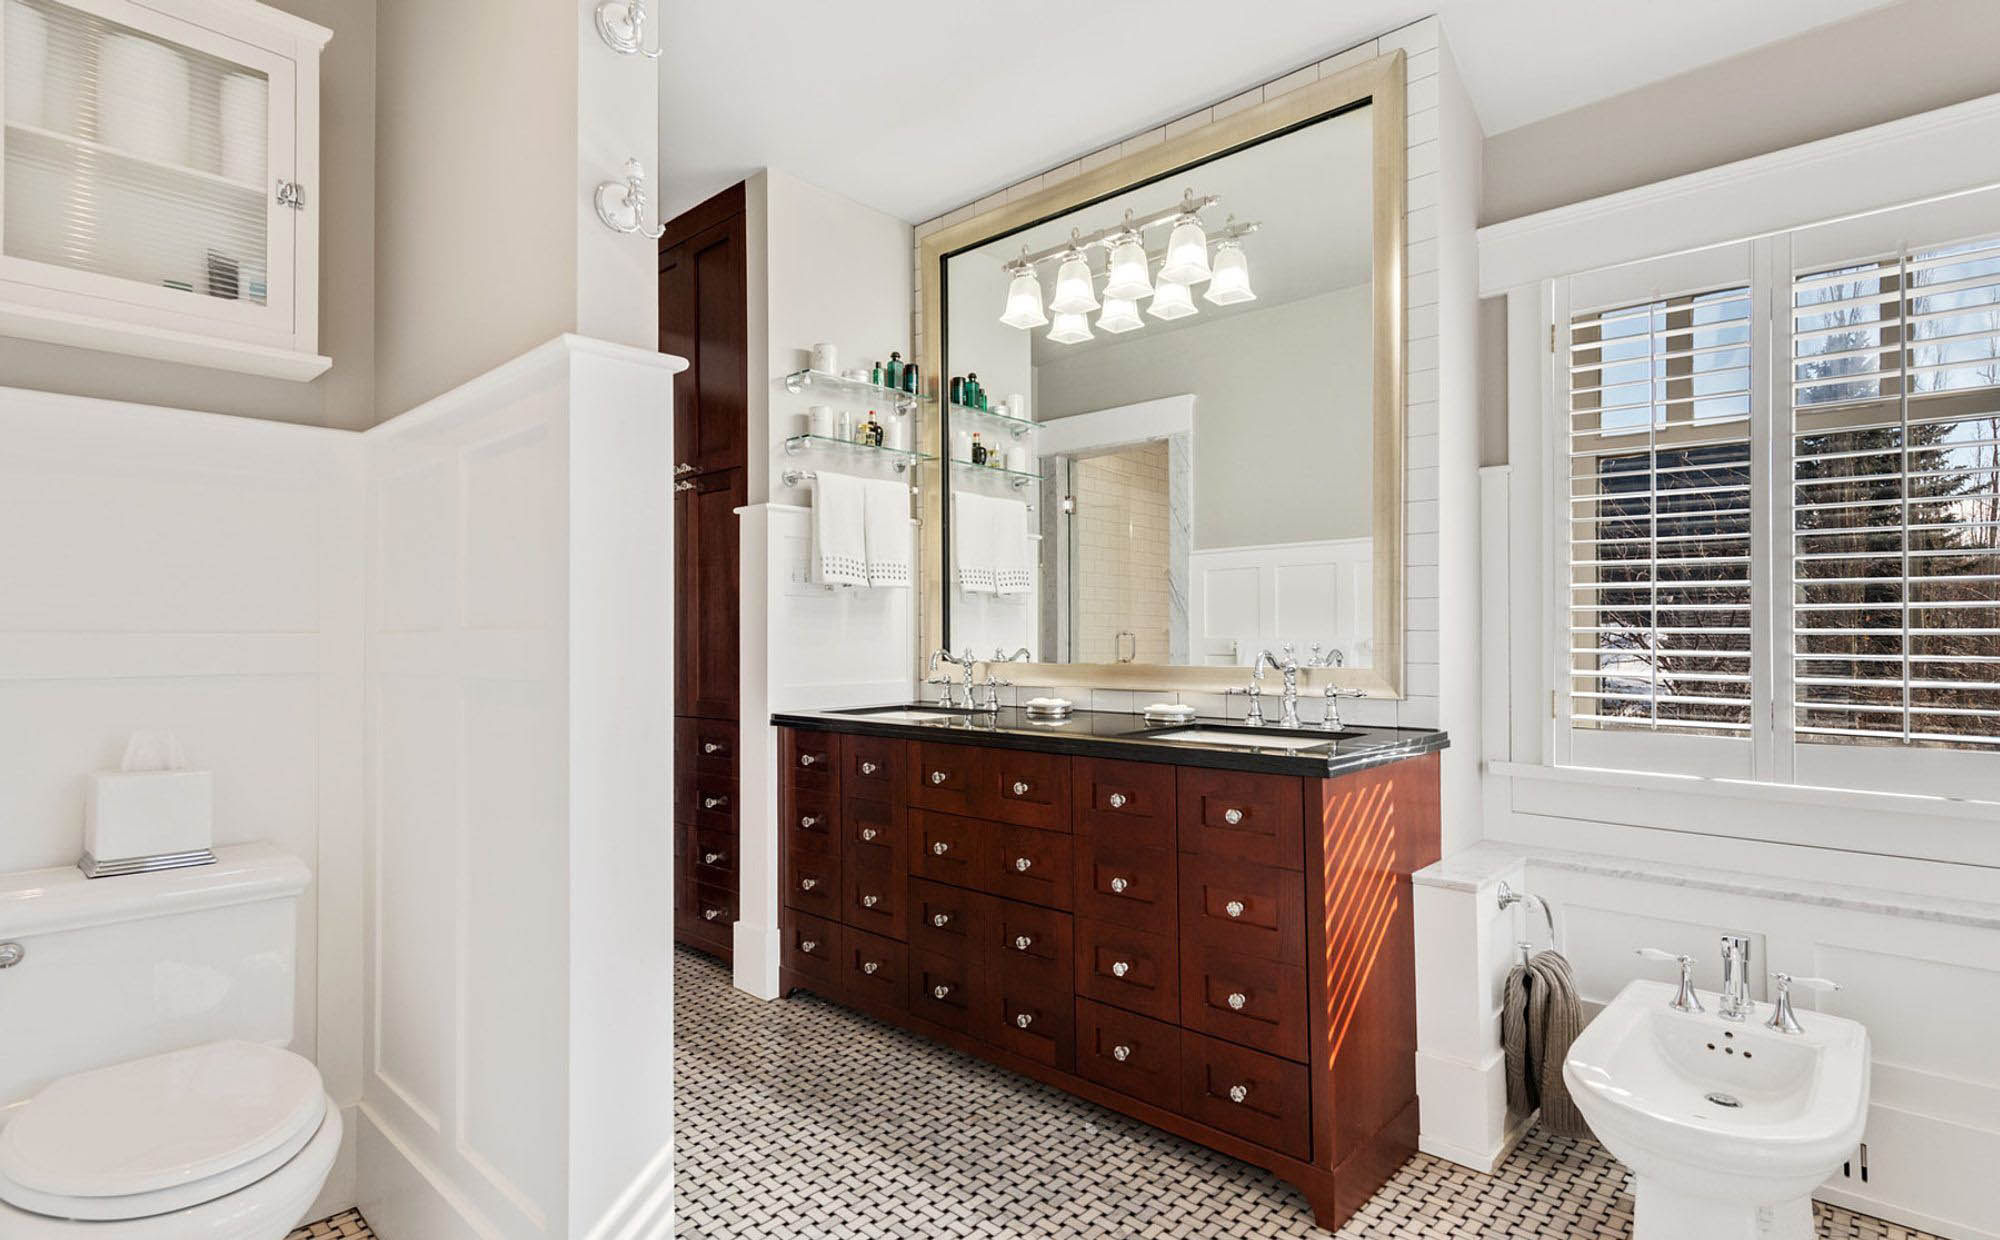 Beautiful master bathroom with box beam wainscoting design. White bathroom with wood vanity featuring lots of drawers.